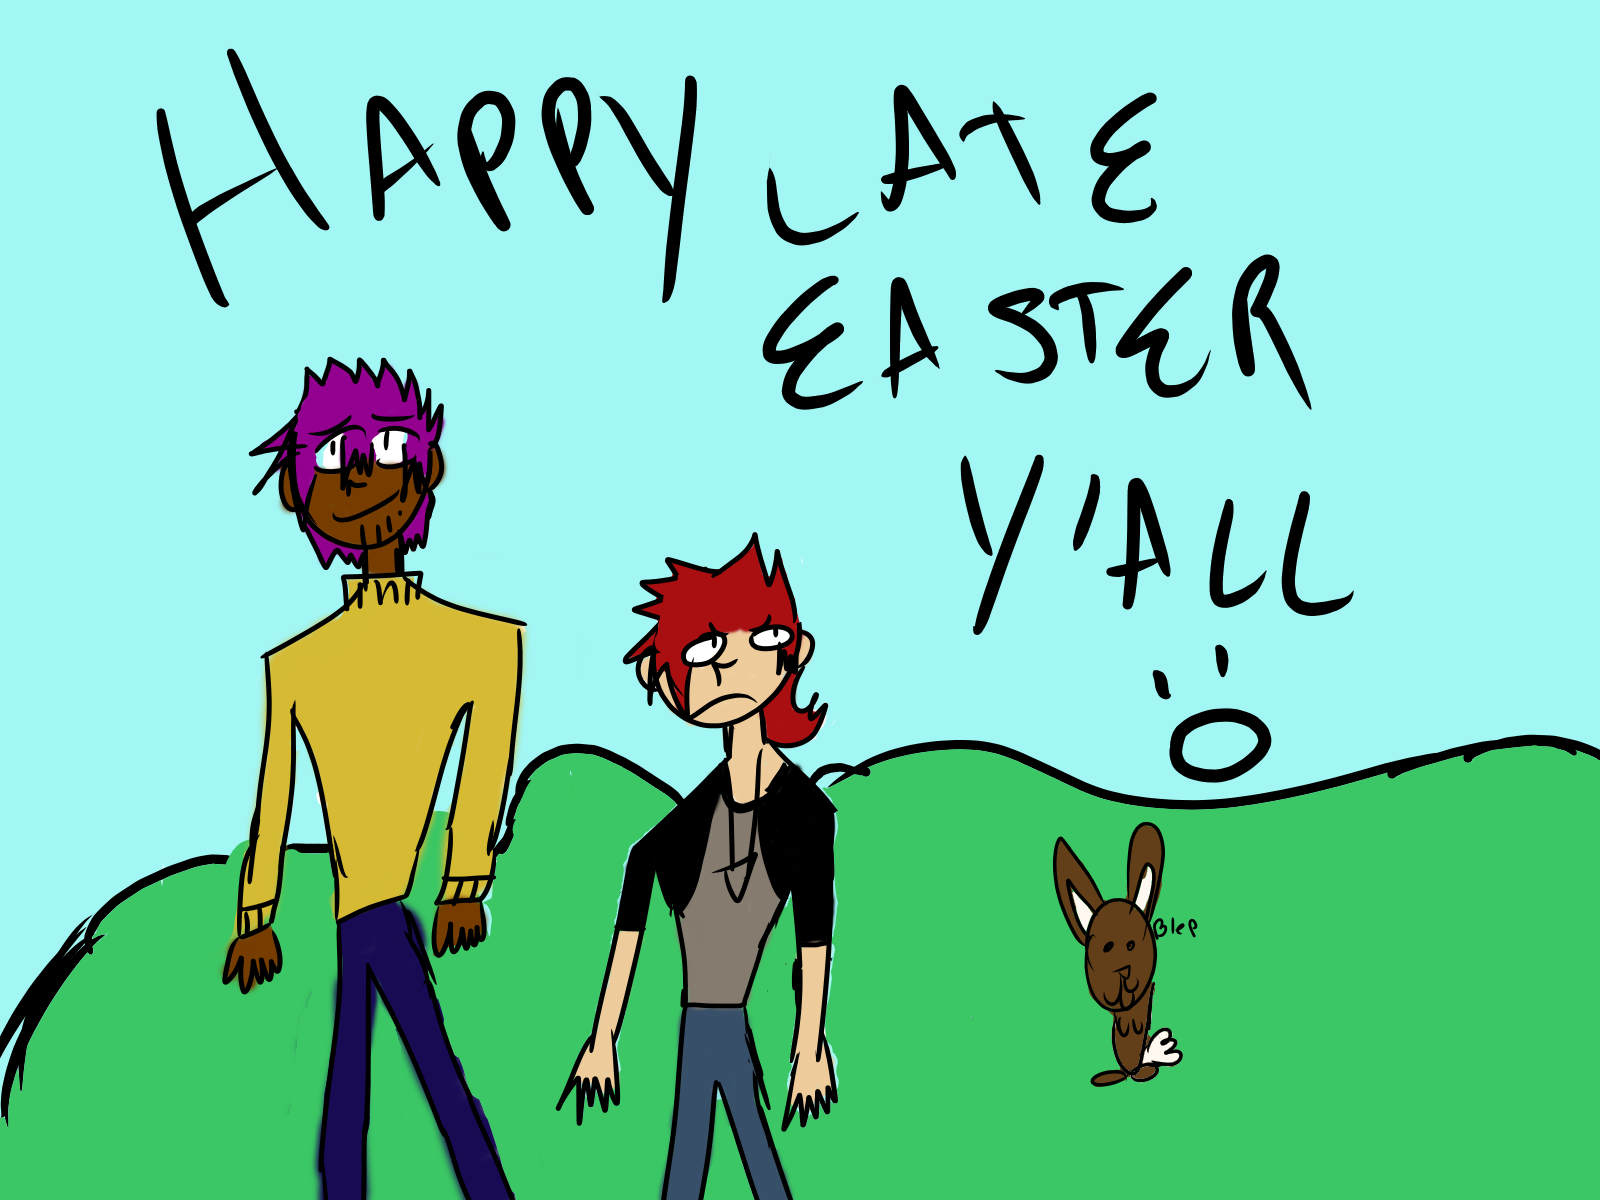 Late easter lmao by ComicCreatorgamer123